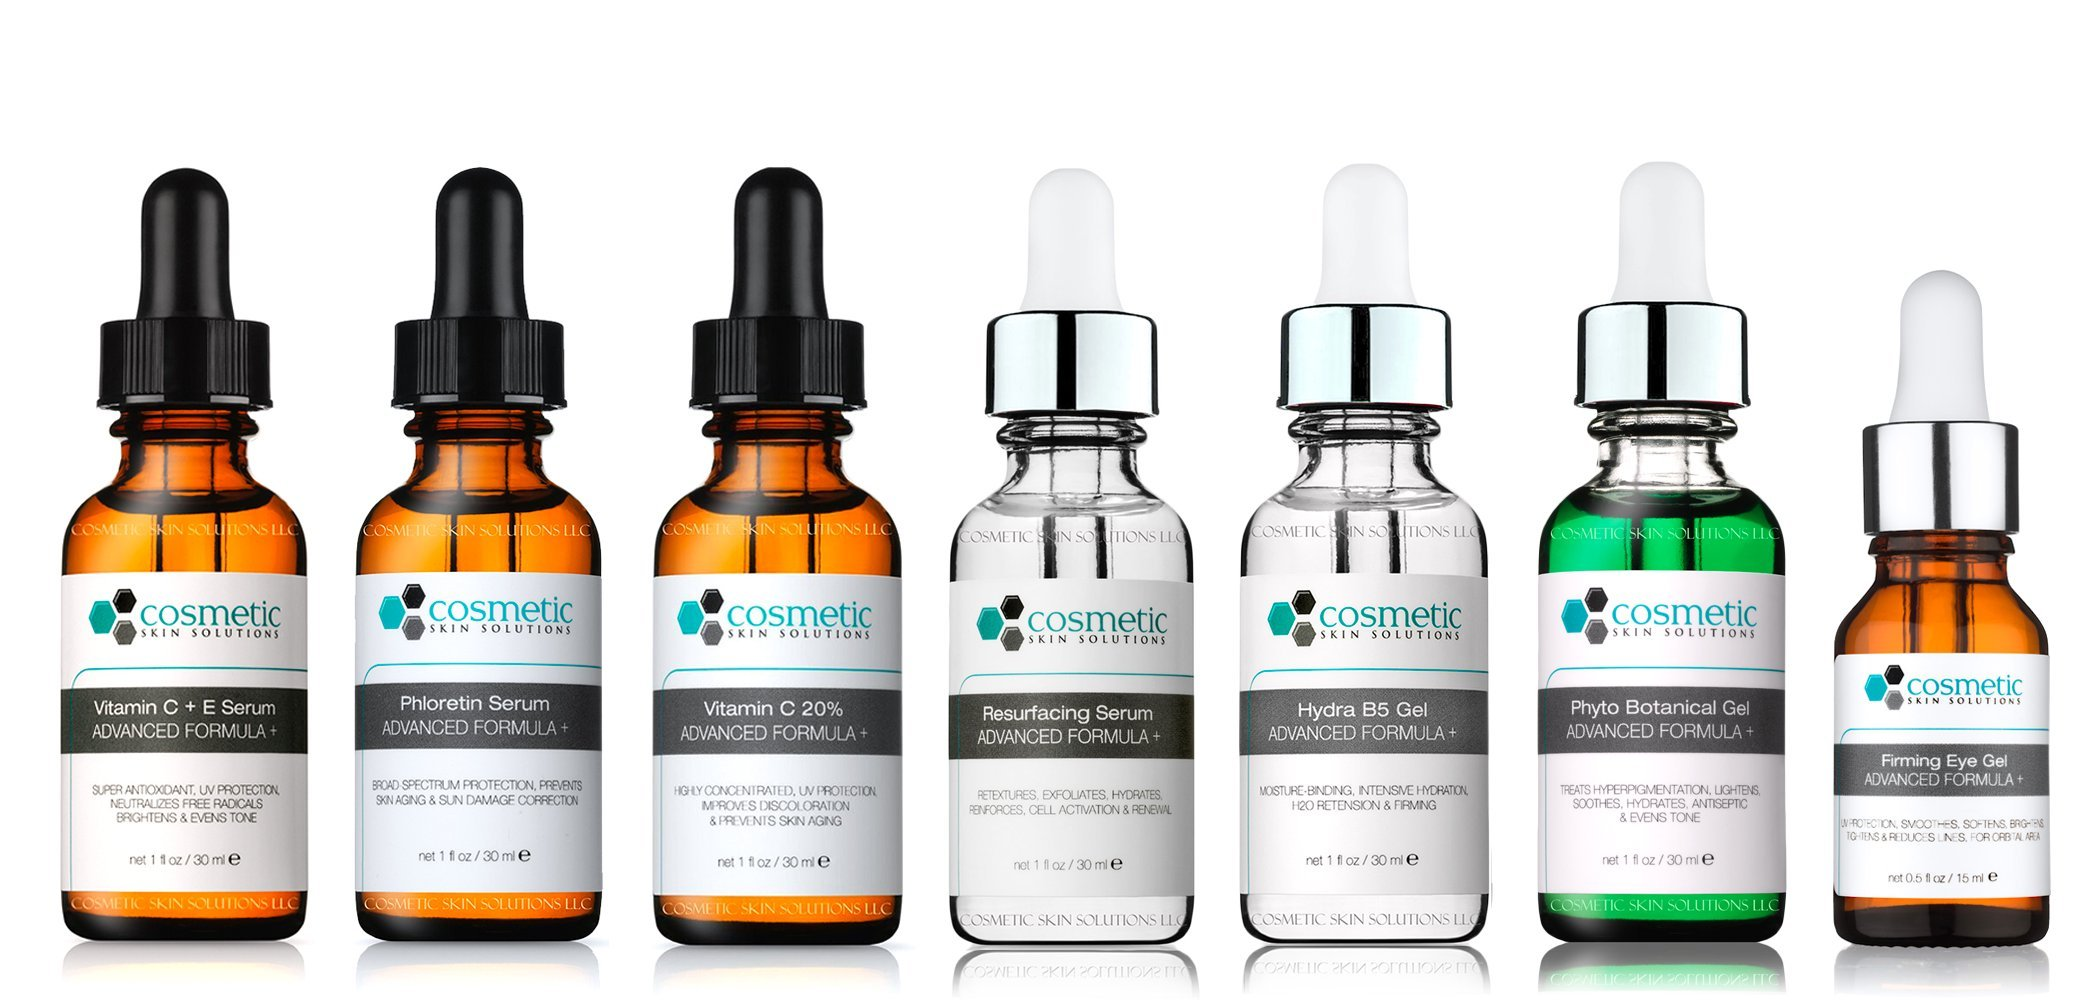 7 Combo Pack Includes EXCLUSIVE SET - Vitamin C+E, Phloretin, C 20%, Resurface, Phyto, B5, Eye, Advanced Formula, PROFESSIONAL ANTIOXIDANTS, 100% SAFE, & MOST EFFECTIVE, No Parabens or Oils